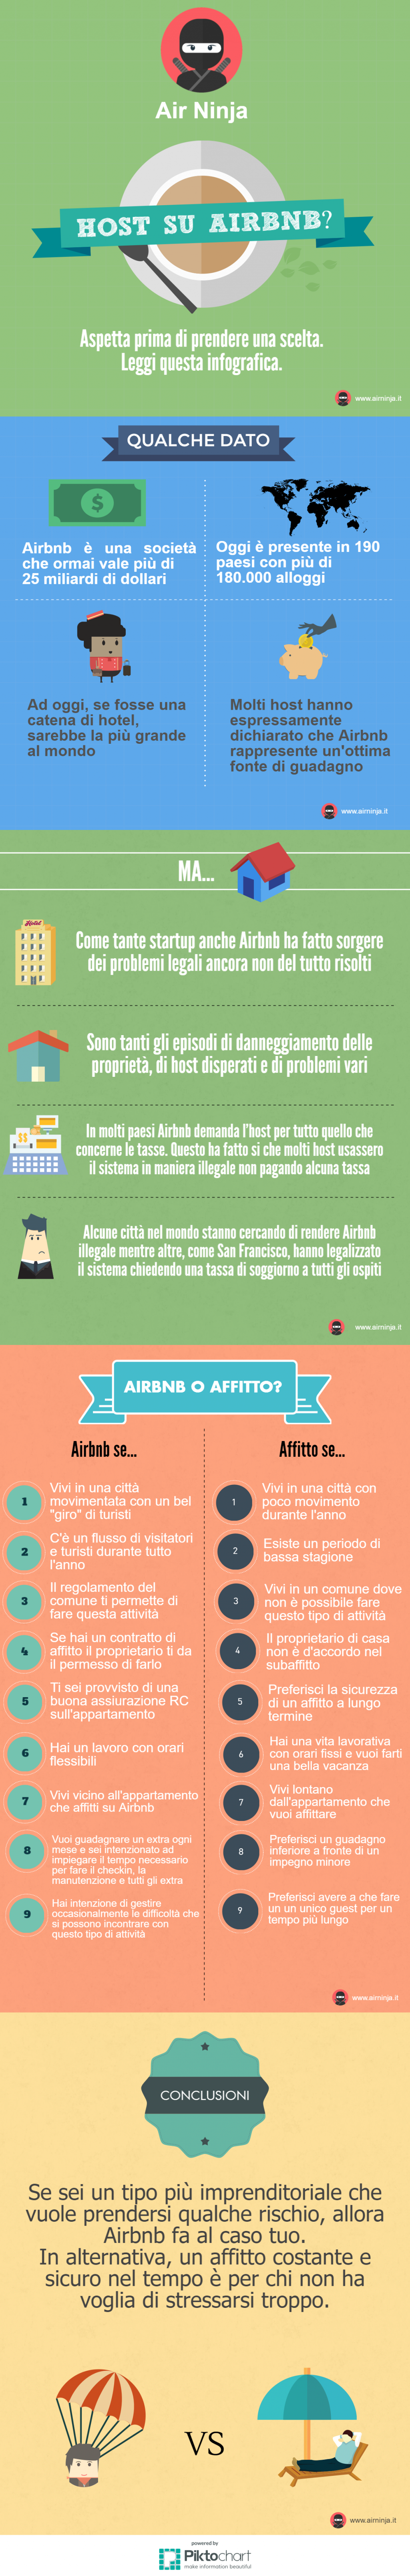 infografica-airbnb-o-affitto